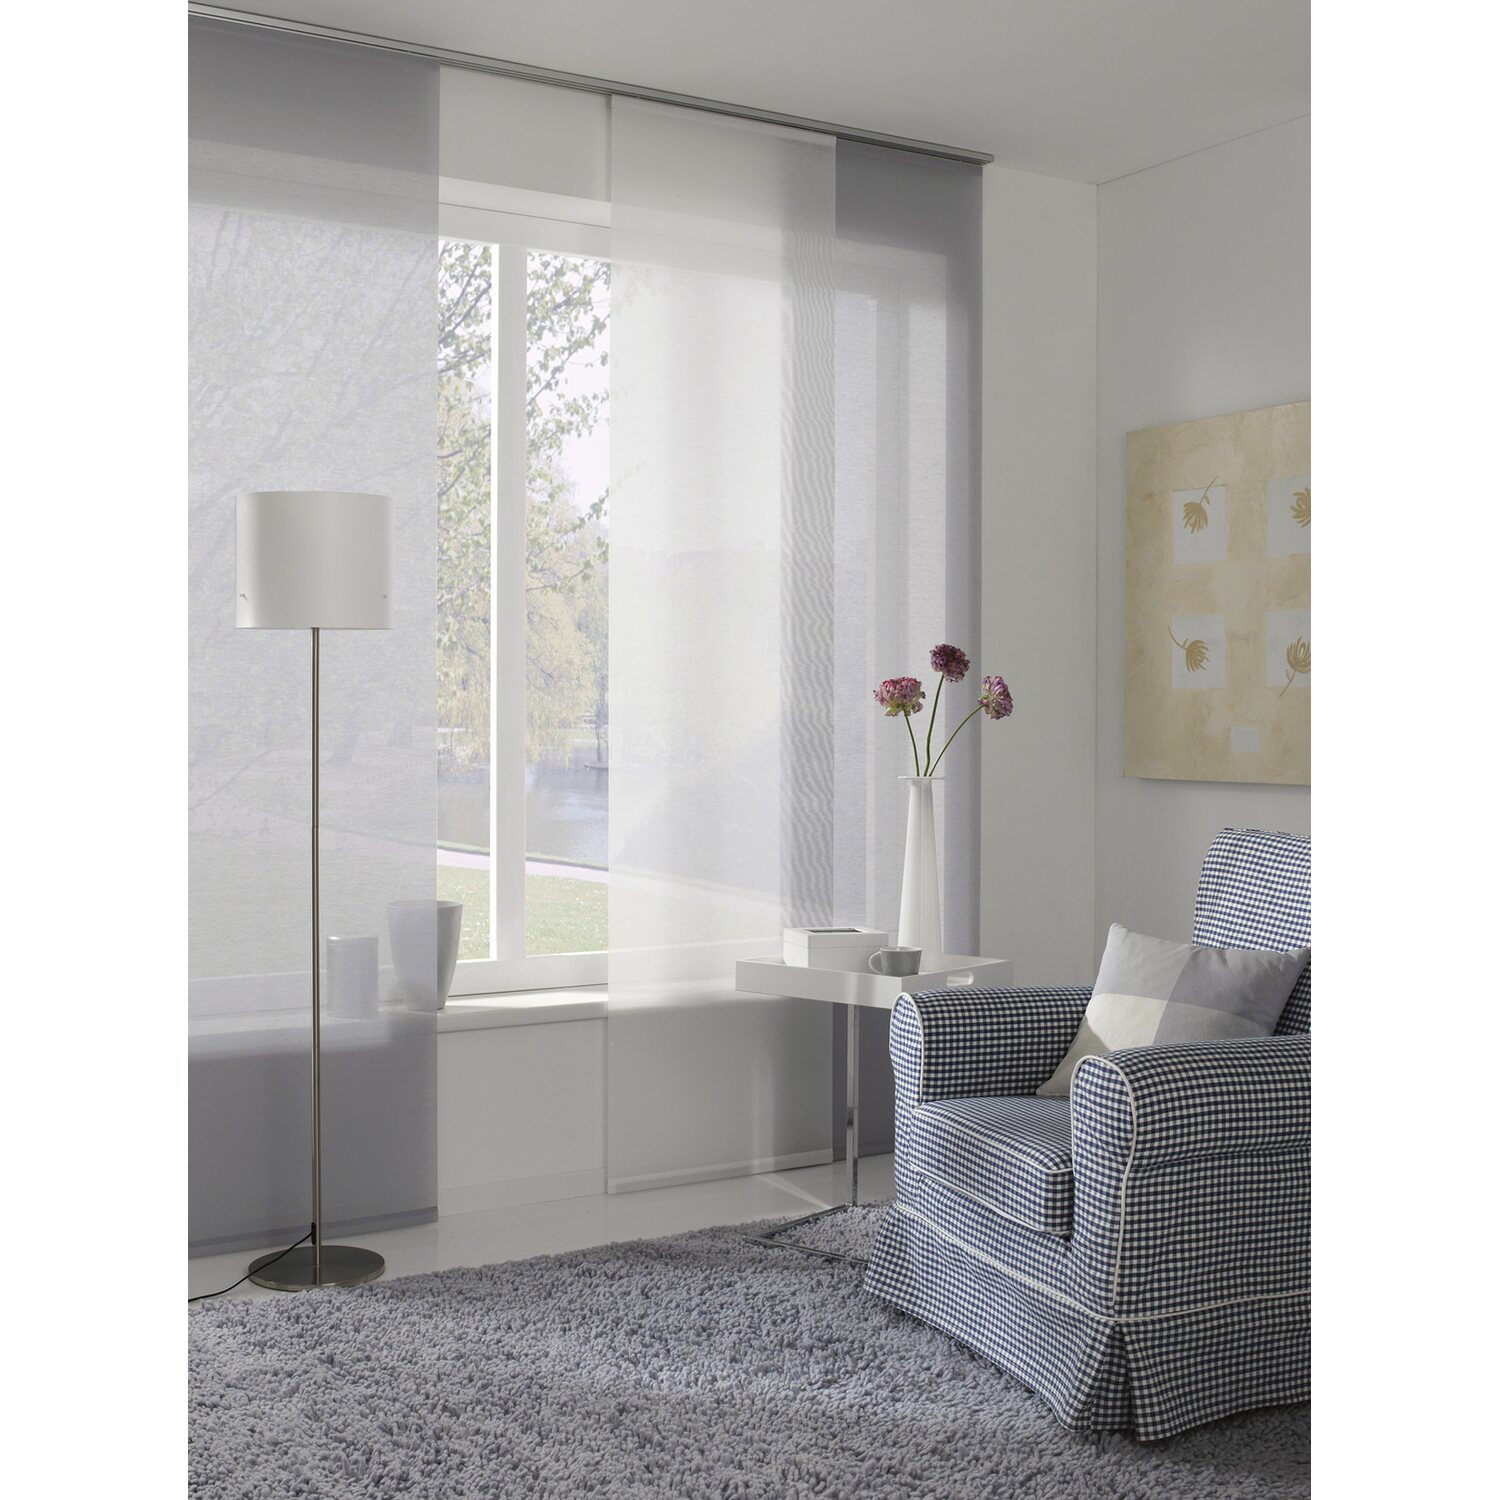 fenster vorhnge kurz ideen fr kche u klassisch und modern. Black Bedroom Furniture Sets. Home Design Ideas